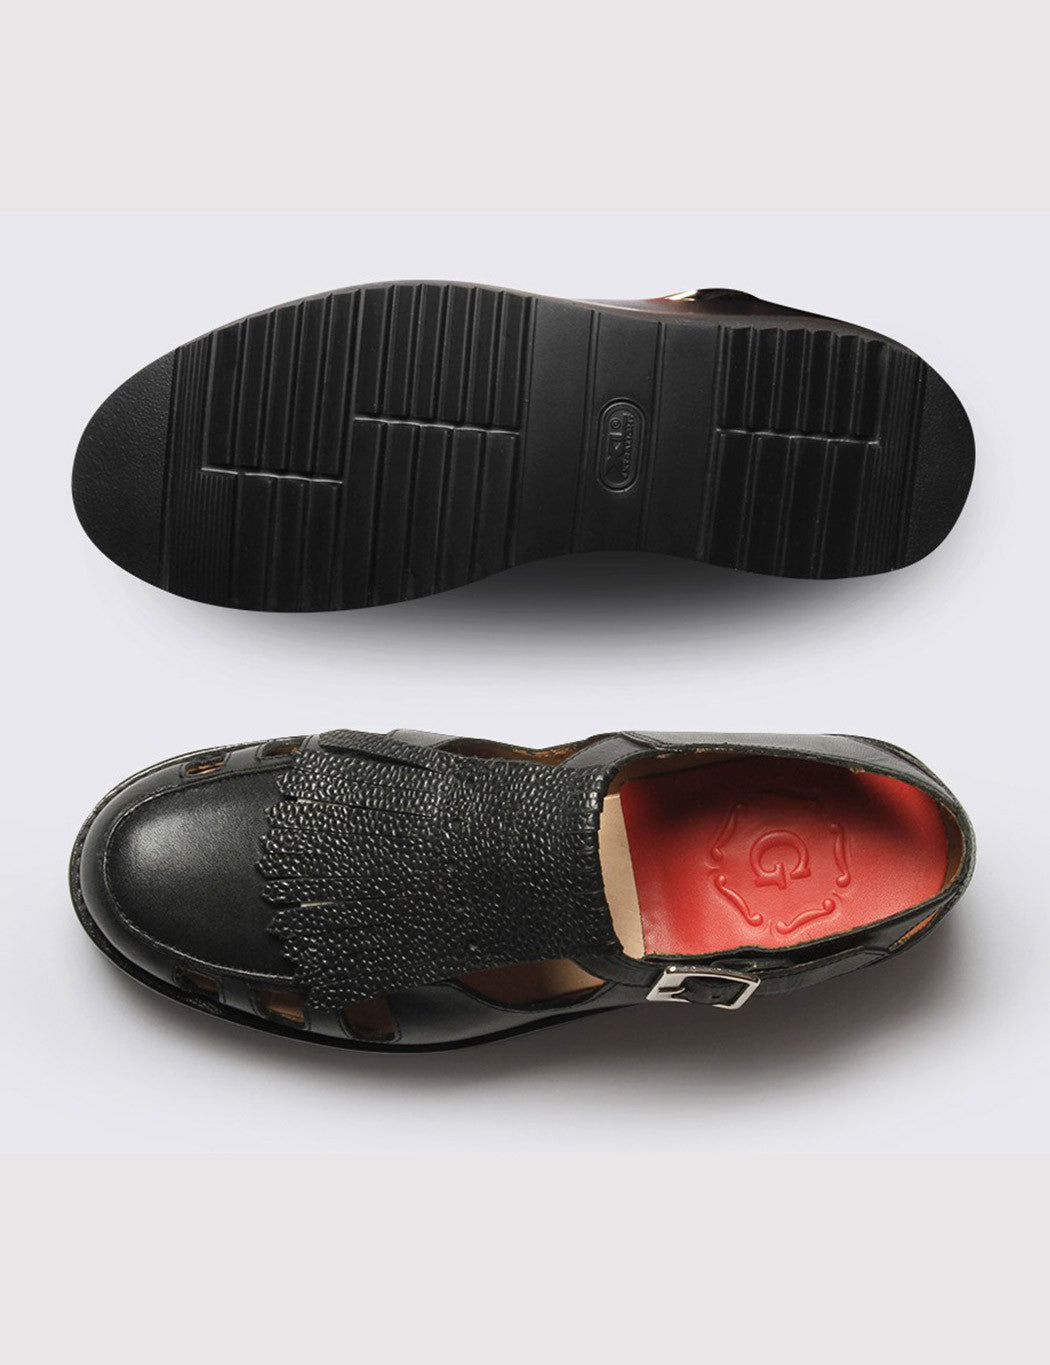 Womens Grenson Ethel Shoe - Black Calf/Grain